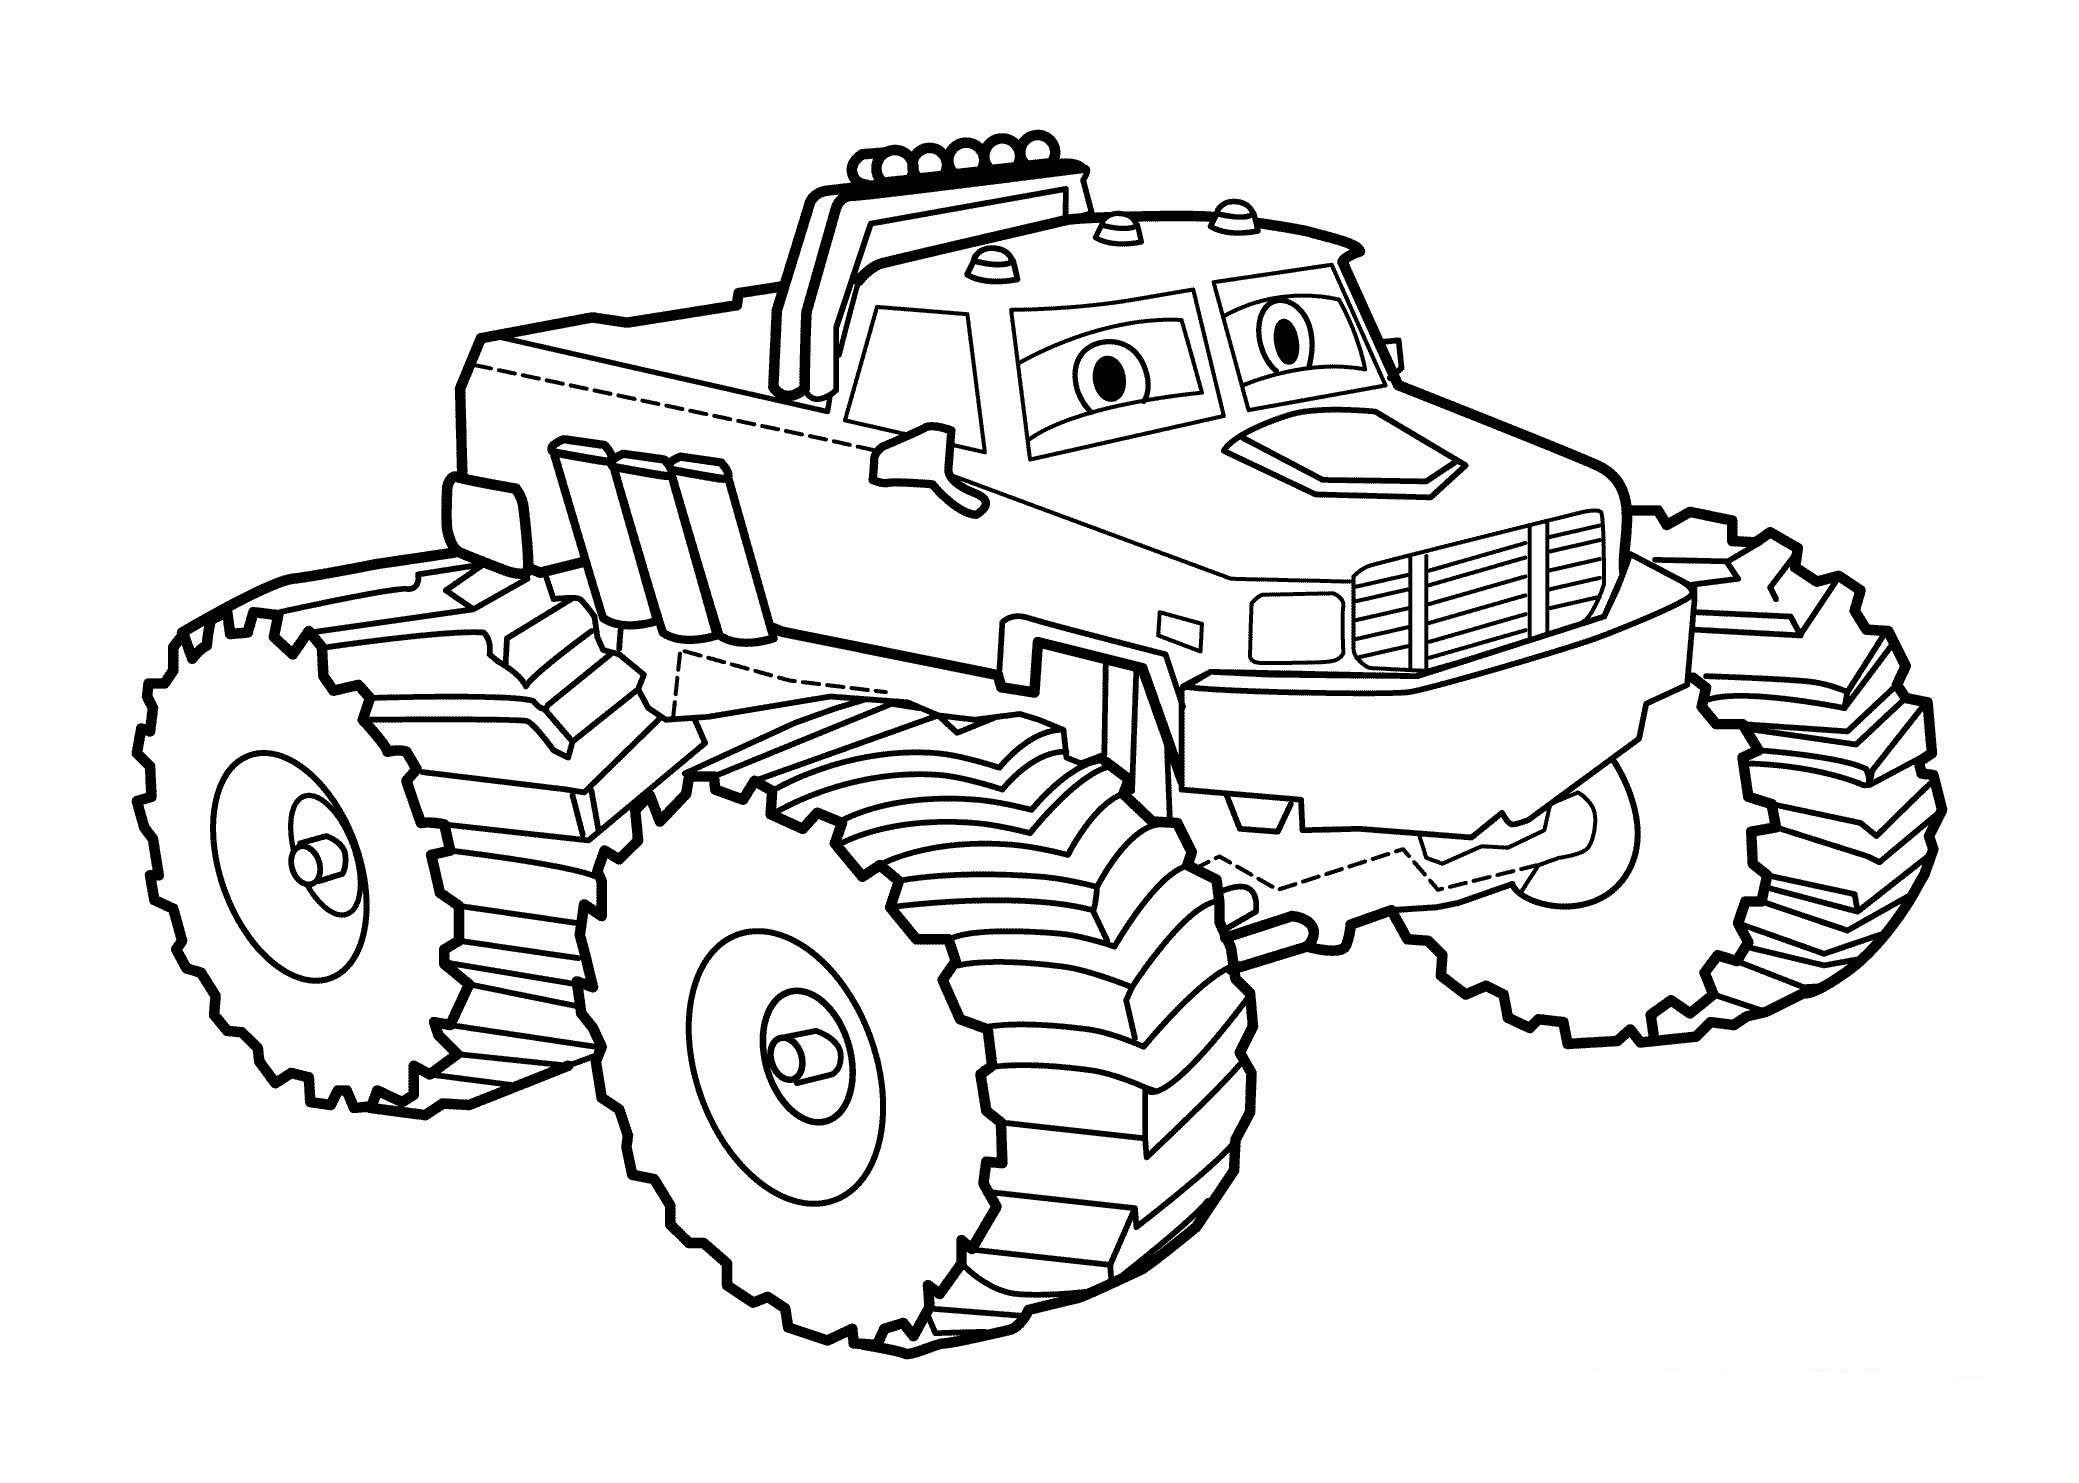 monster truck coloring page free printable monster truck coloring pages for kids monster page truck coloring